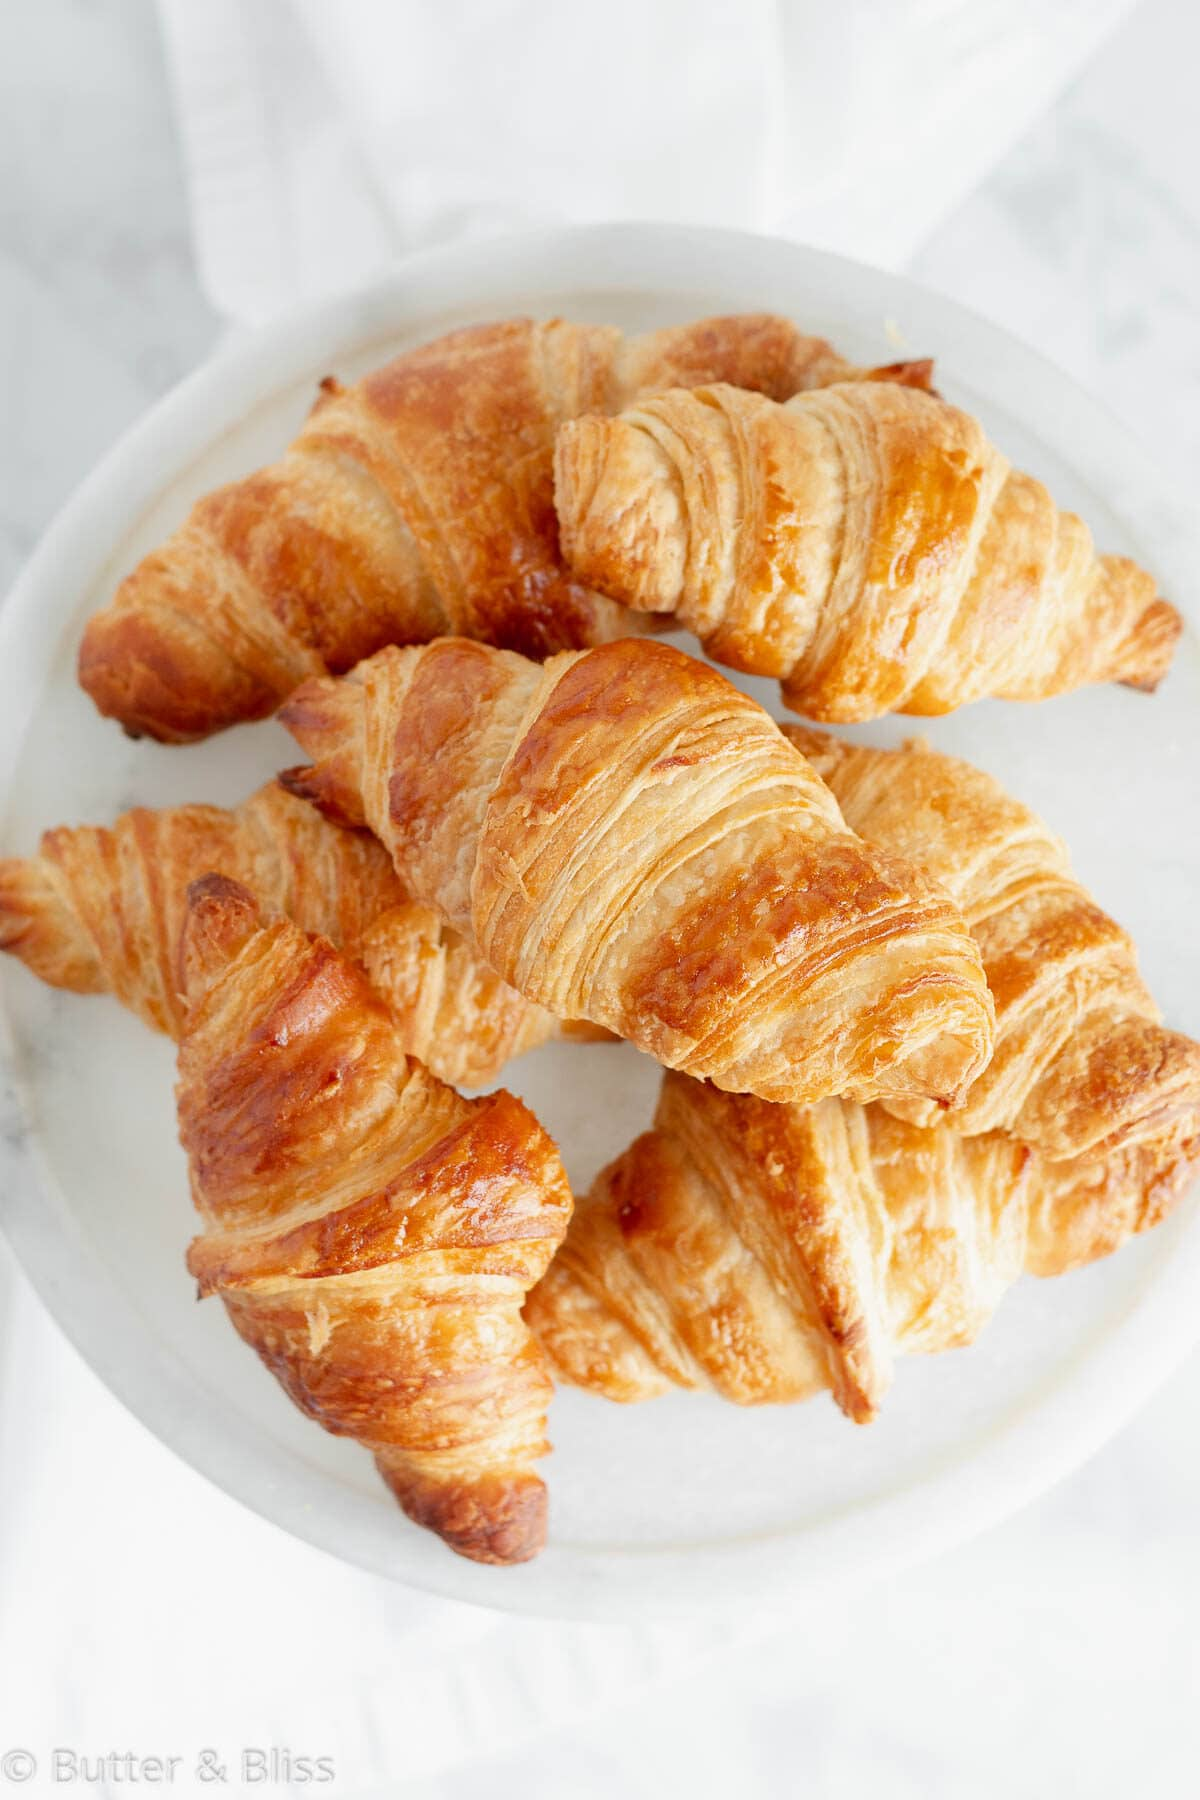 Top of homemade flaky croissants on a plate